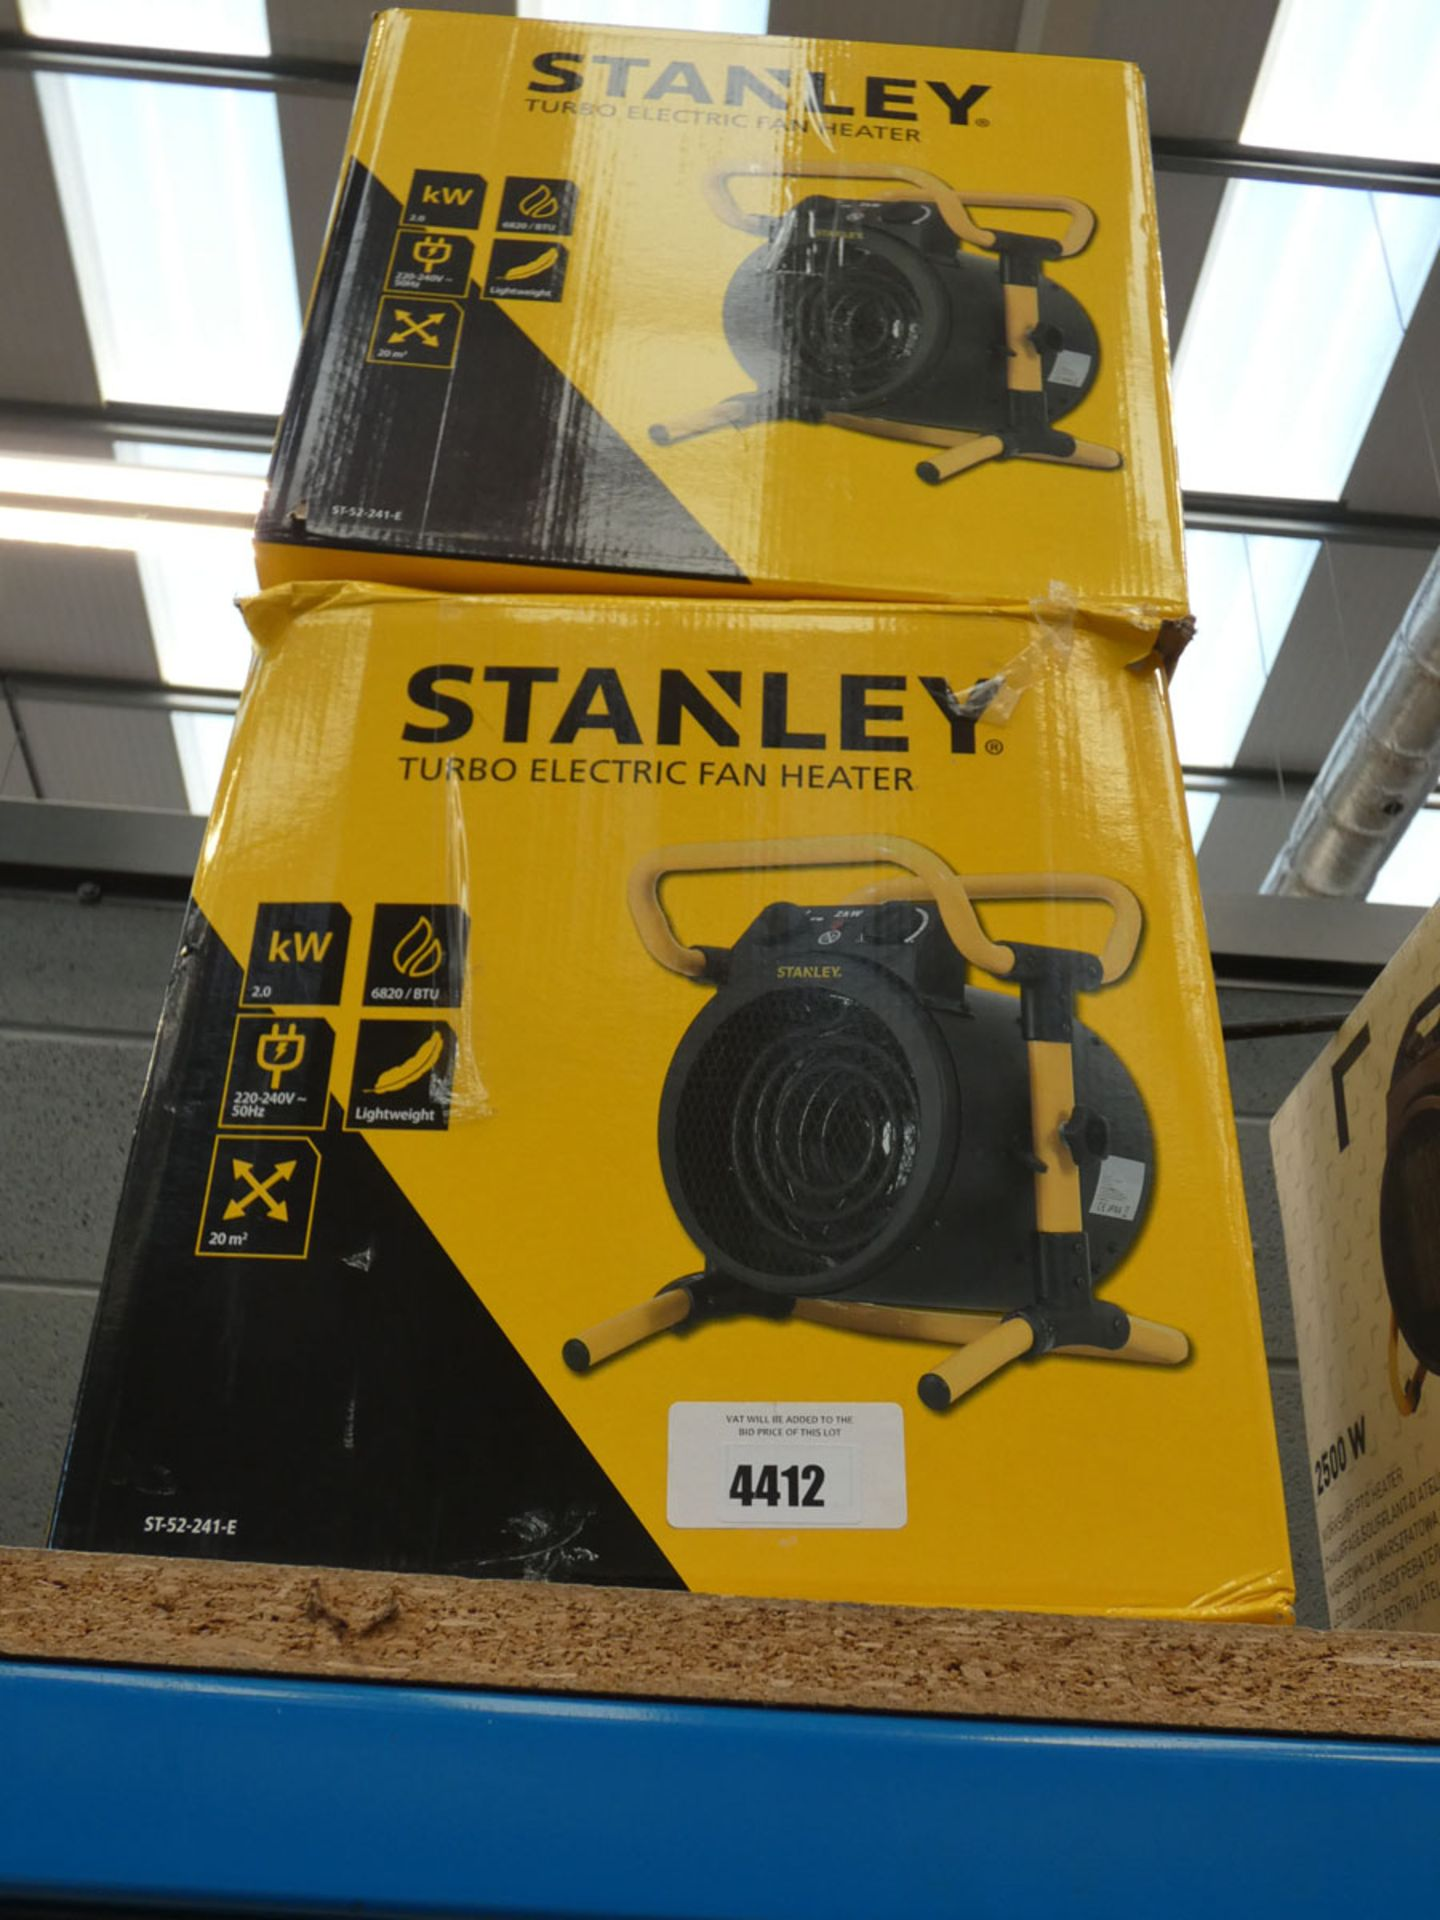 2 boxed Stanley heaters